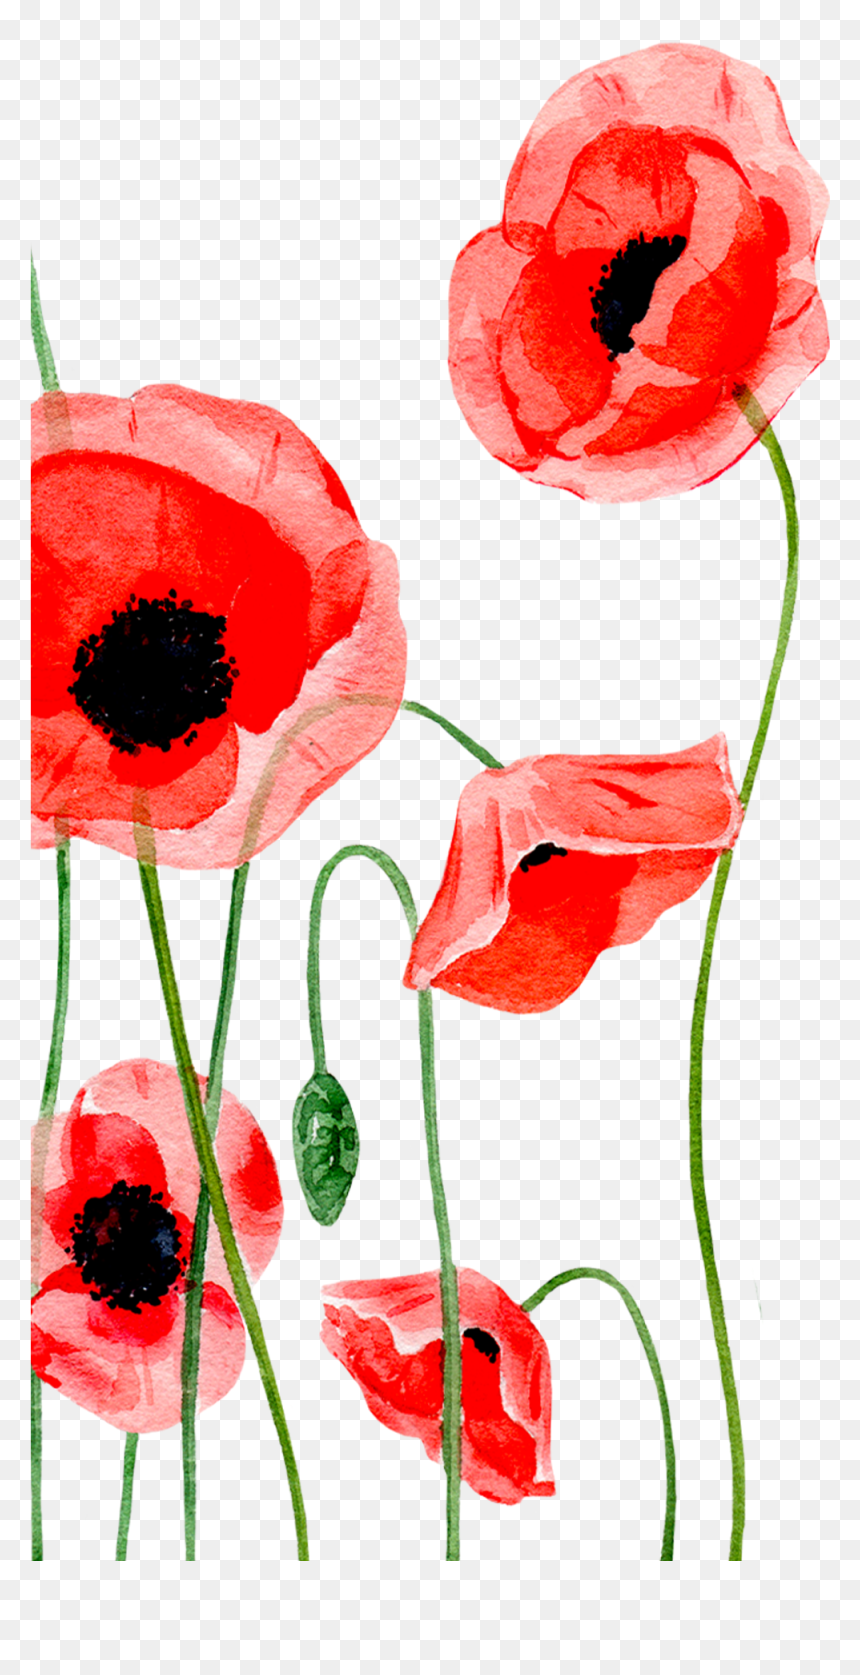 Transparent Remembrance Day Clipart Iphone Wallpaper Poppy Flower Hd Png Download Vhv